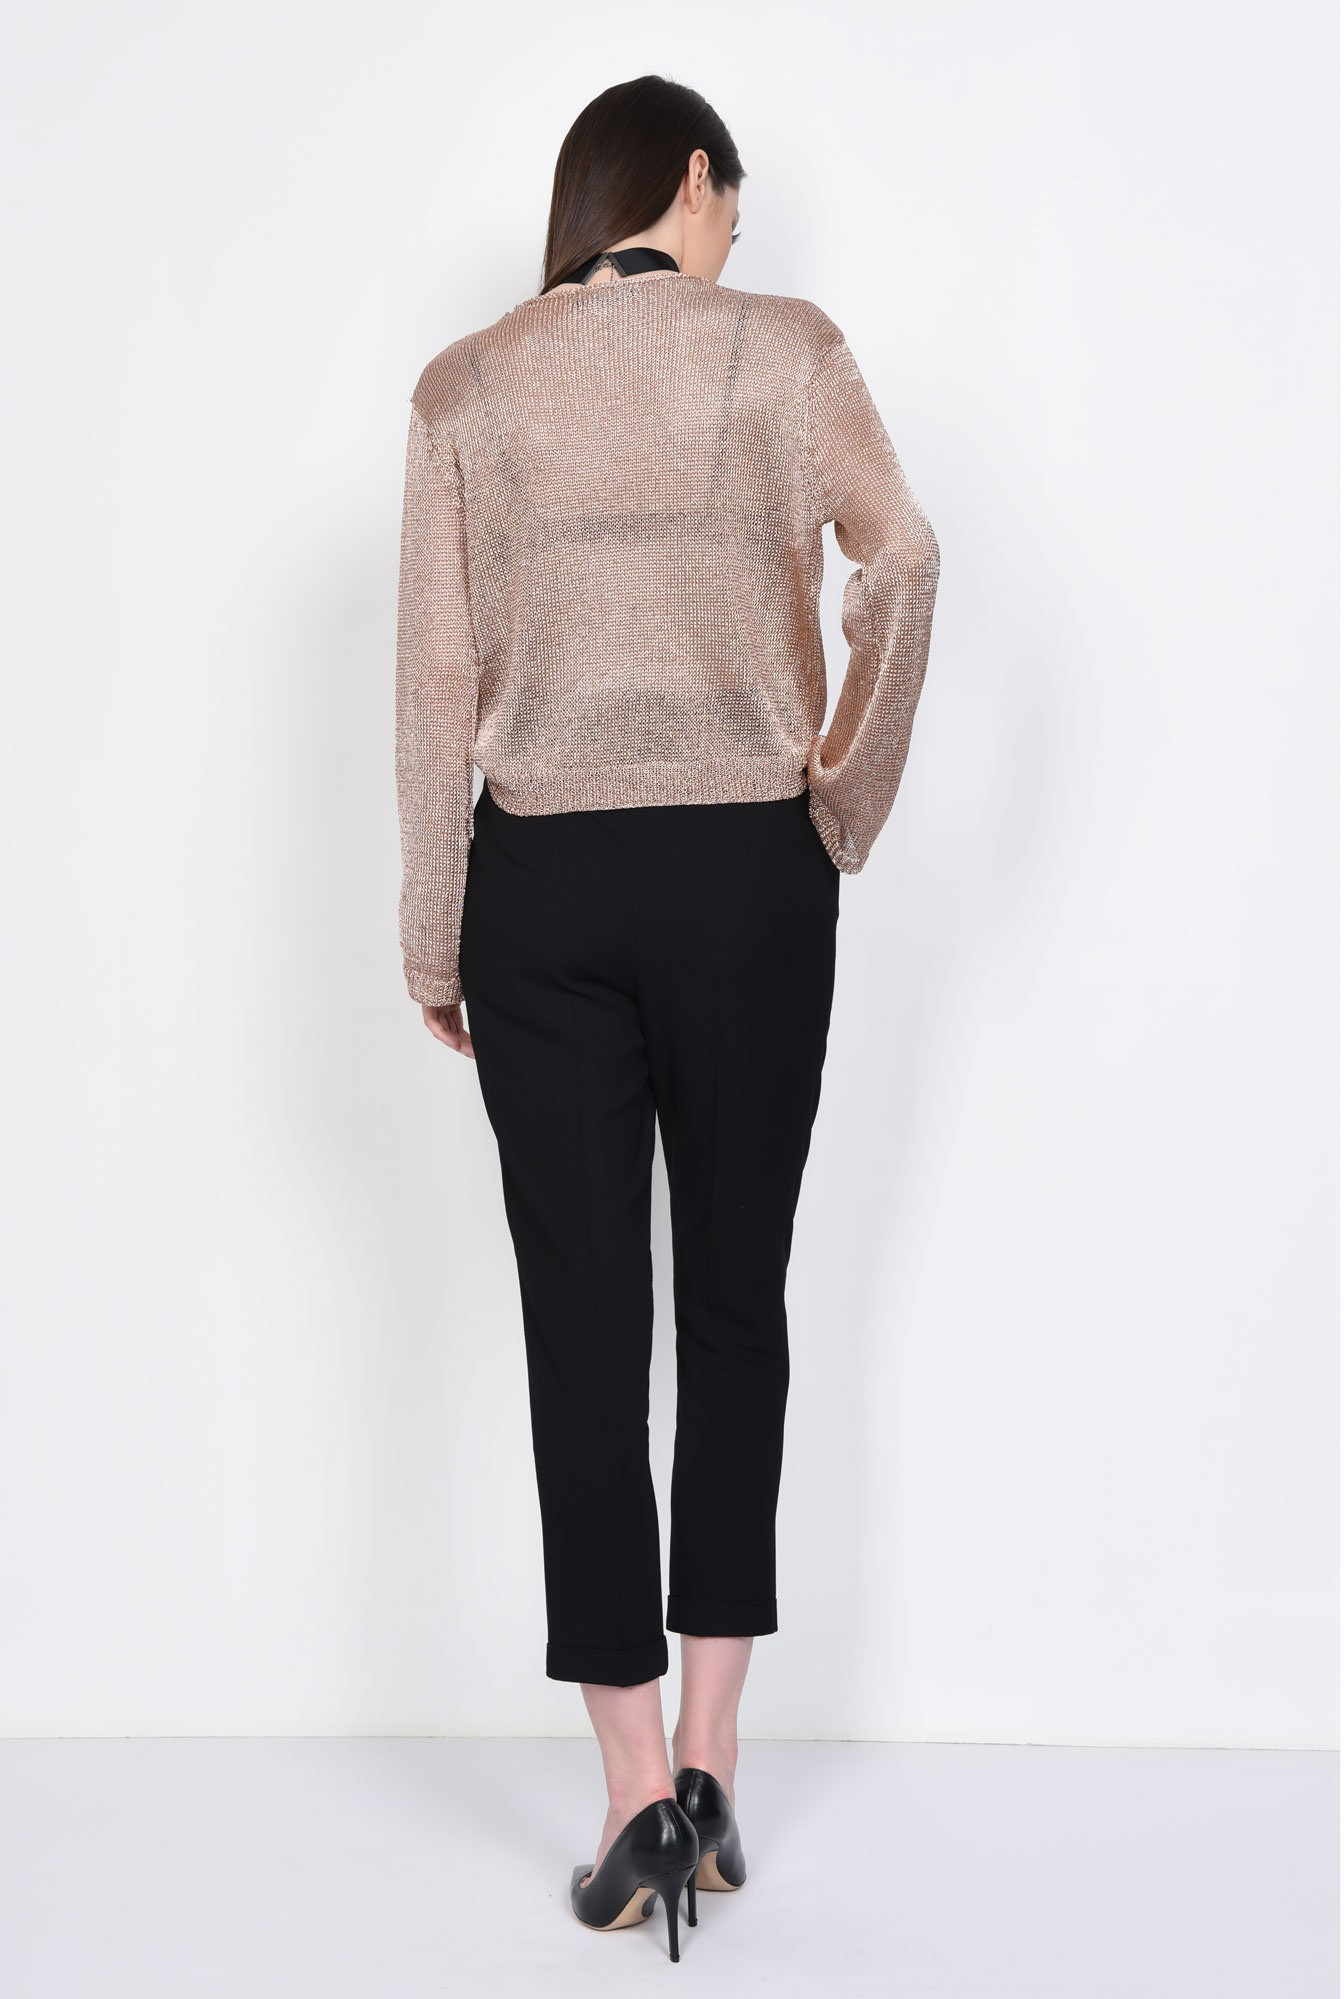 1 - PULOVER CASUAL PL15021707-ROZ